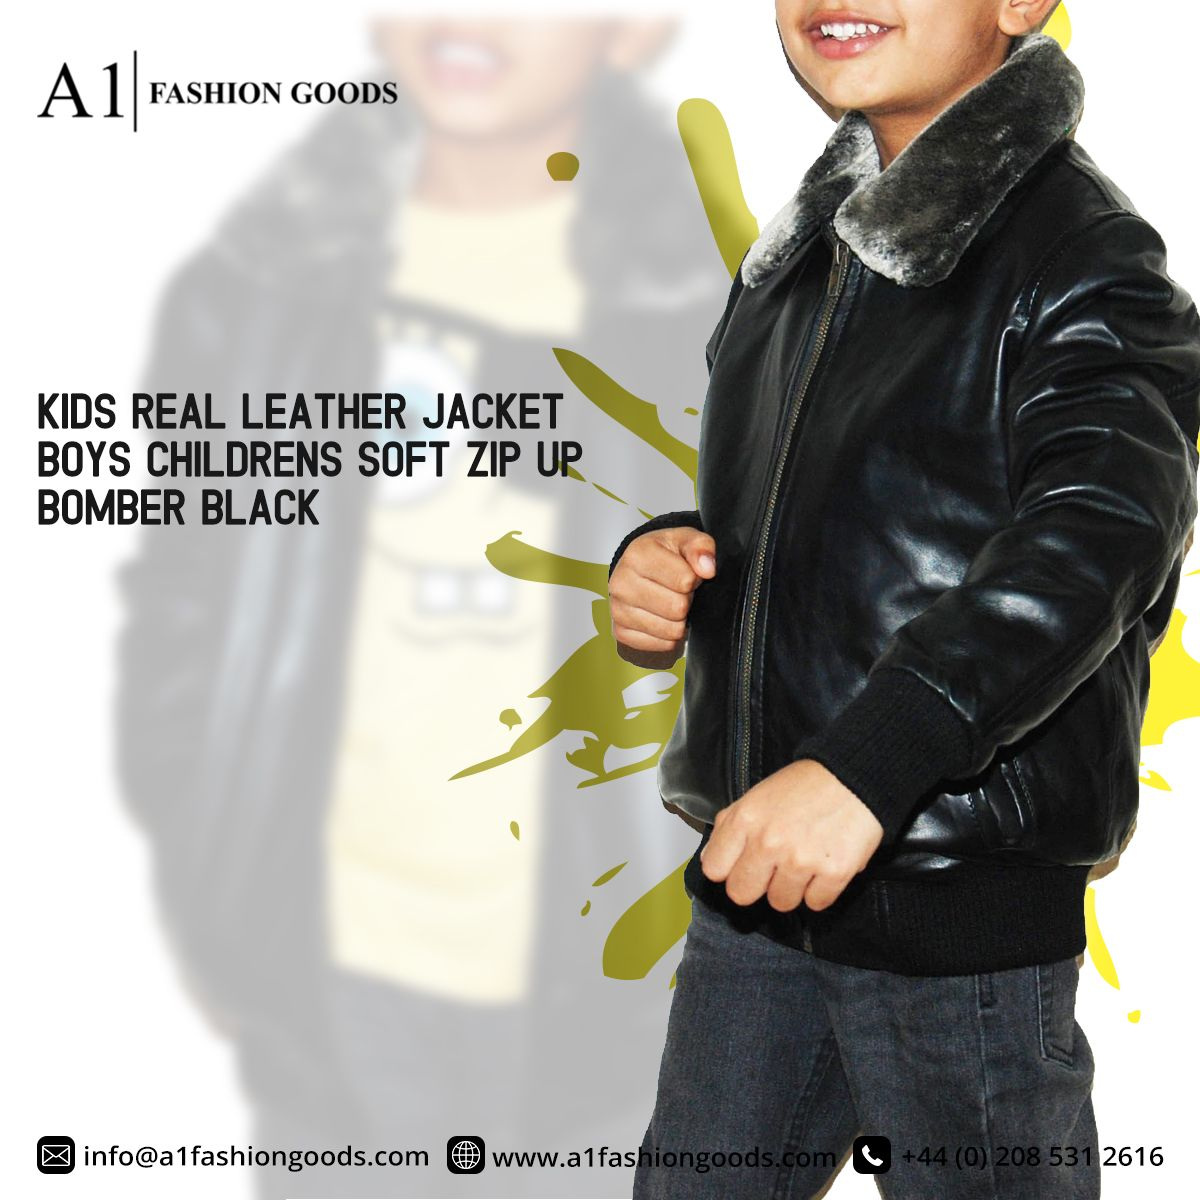 Kids Real Black Leather Bomber Jacket Boys Childrens Soft Zip Up Coat 2 12 Years Black Leather Bomber Jacket Leather Bomber Jacket Real Leather Jacket [ 1200 x 1200 Pixel ]